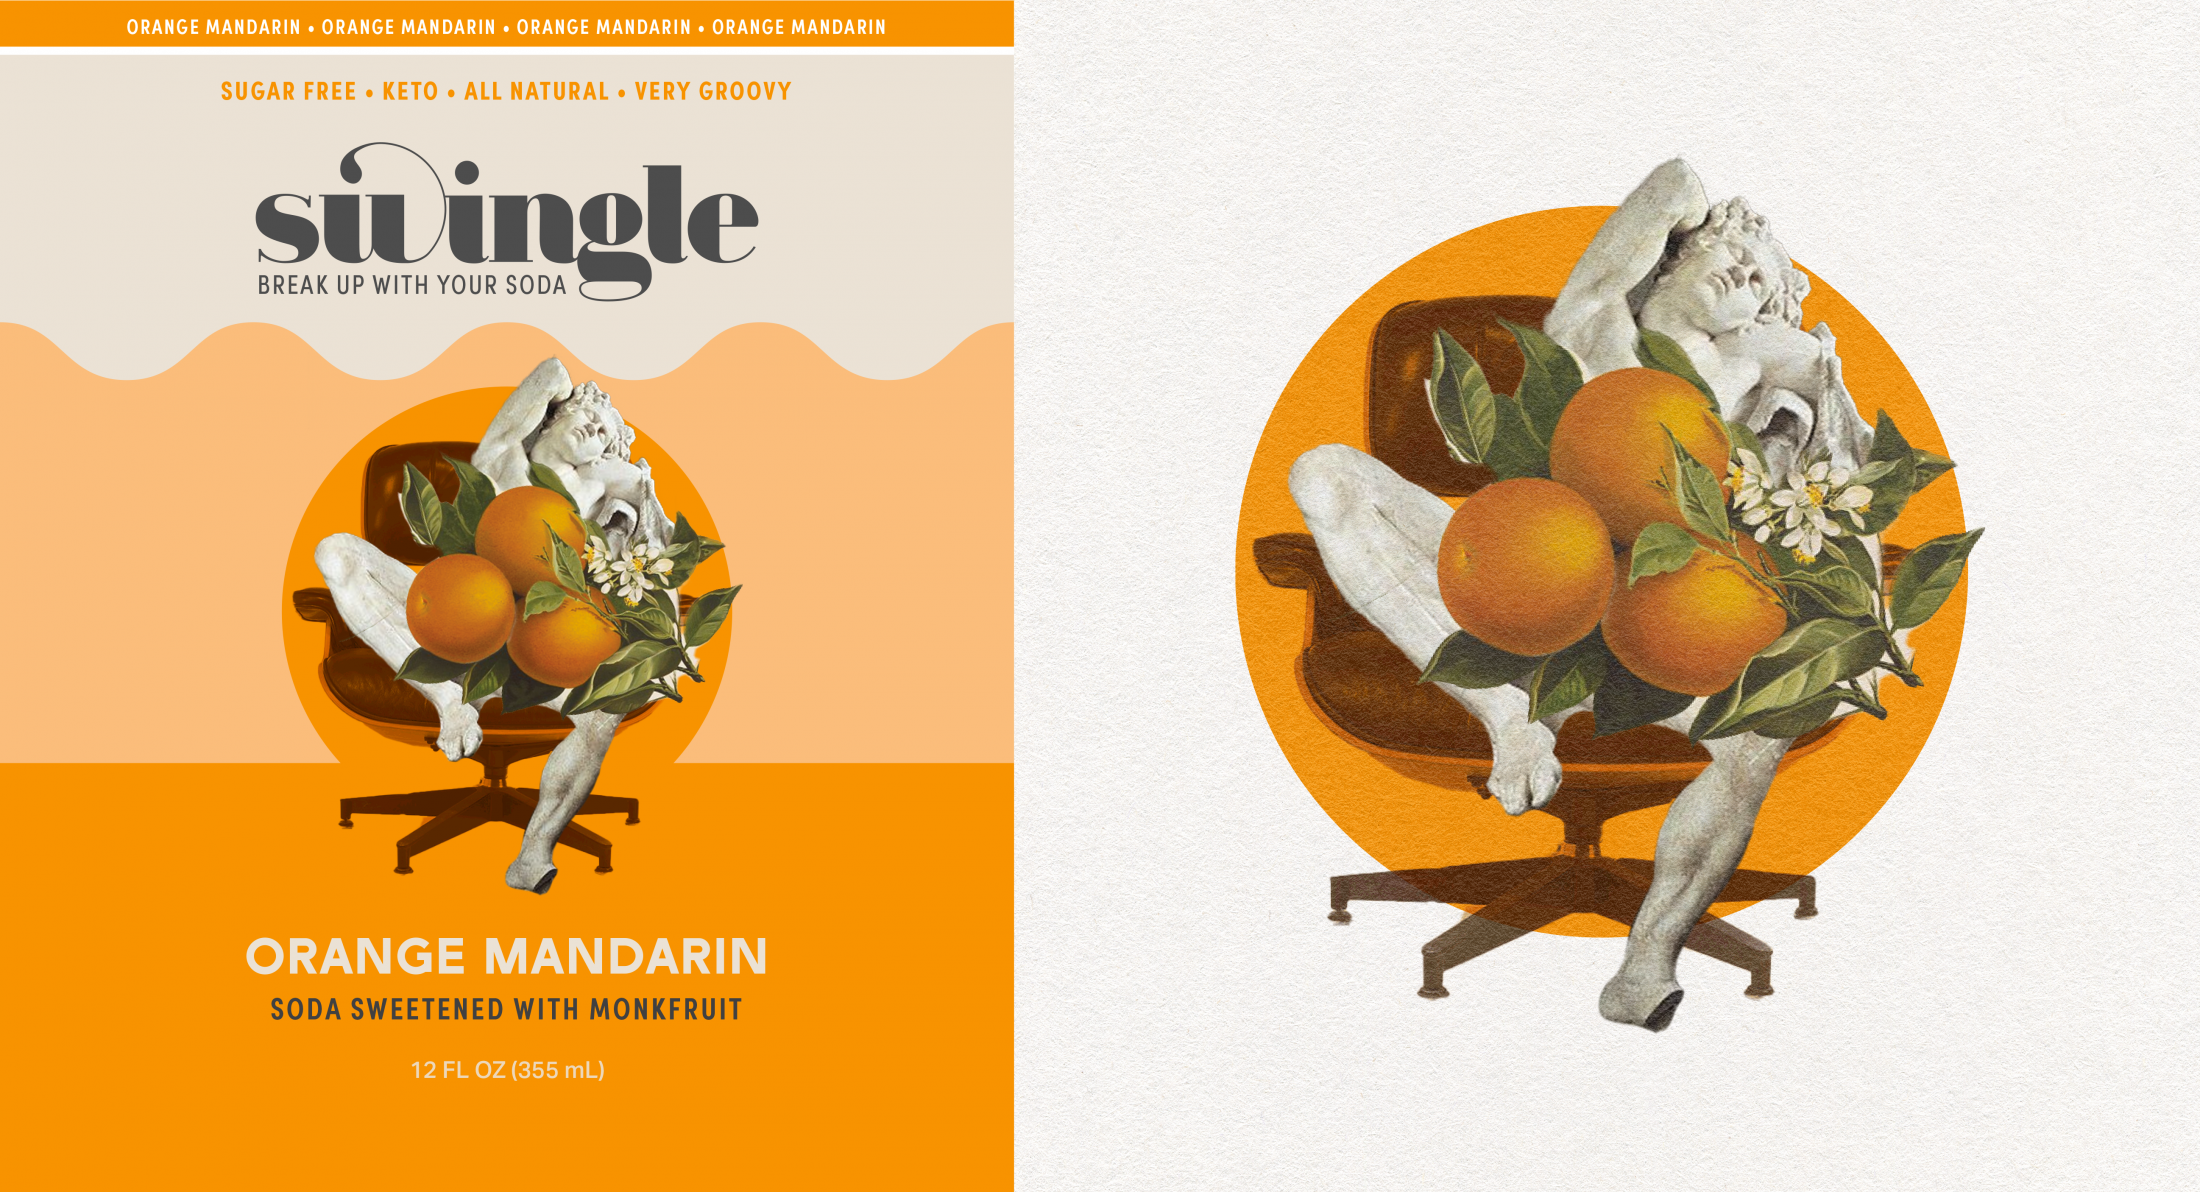 Label Art: A greek statue reclining in an Eames chair, censored by oranges with an orange circle in the background.